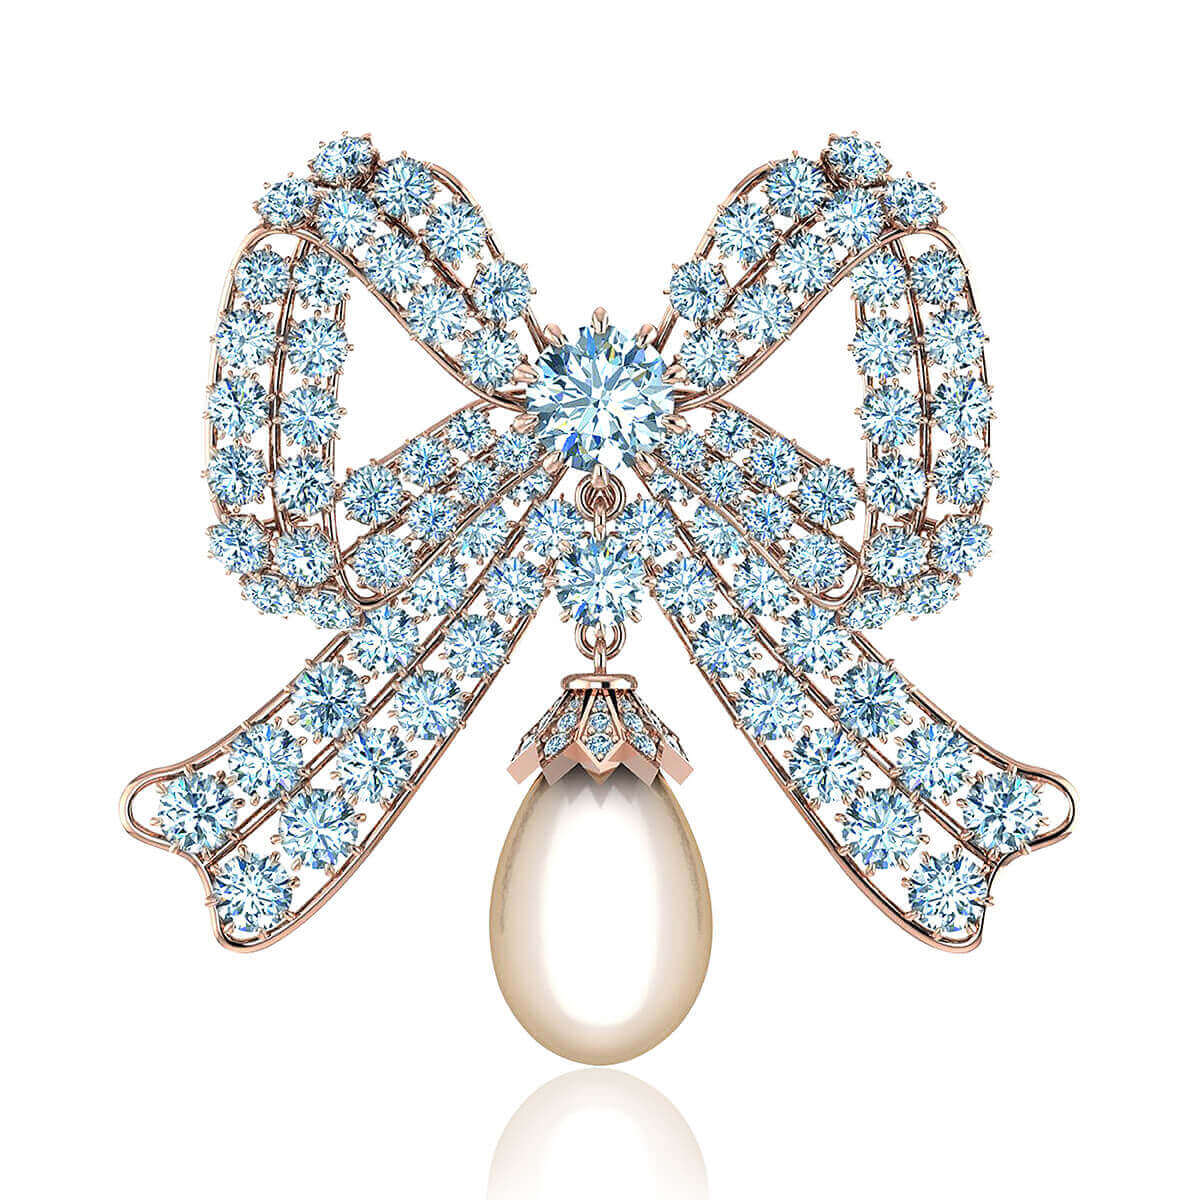 Elizabeth Diamond Brooch (3 CT. TW.)